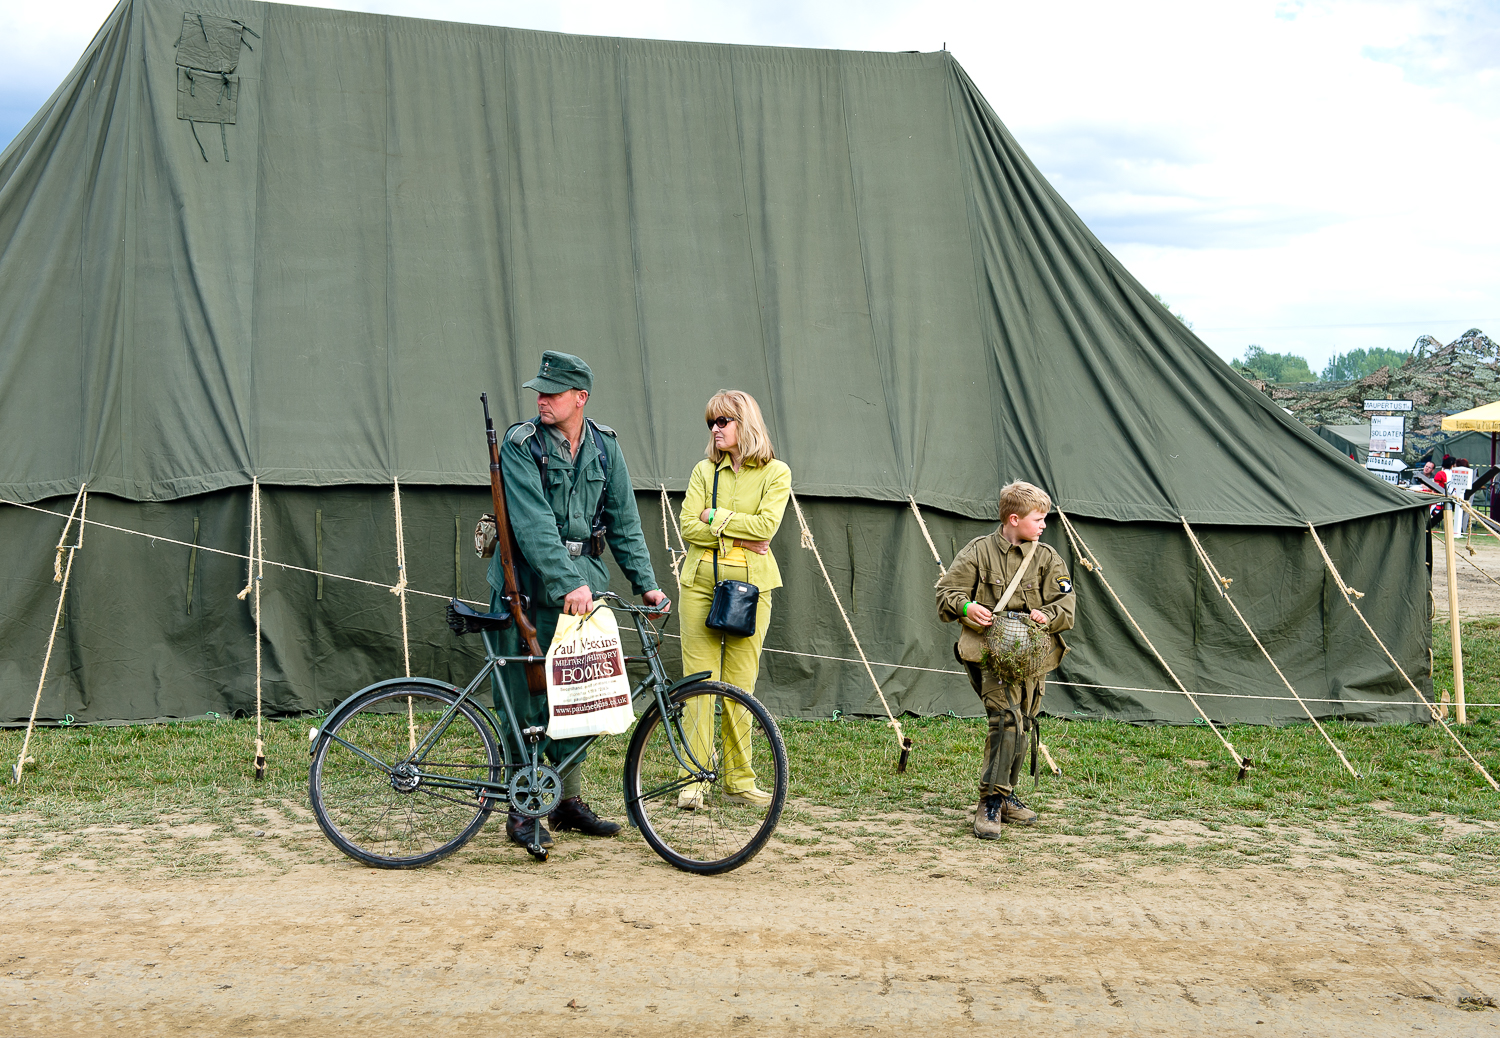 Family at War and Peace show, Kent